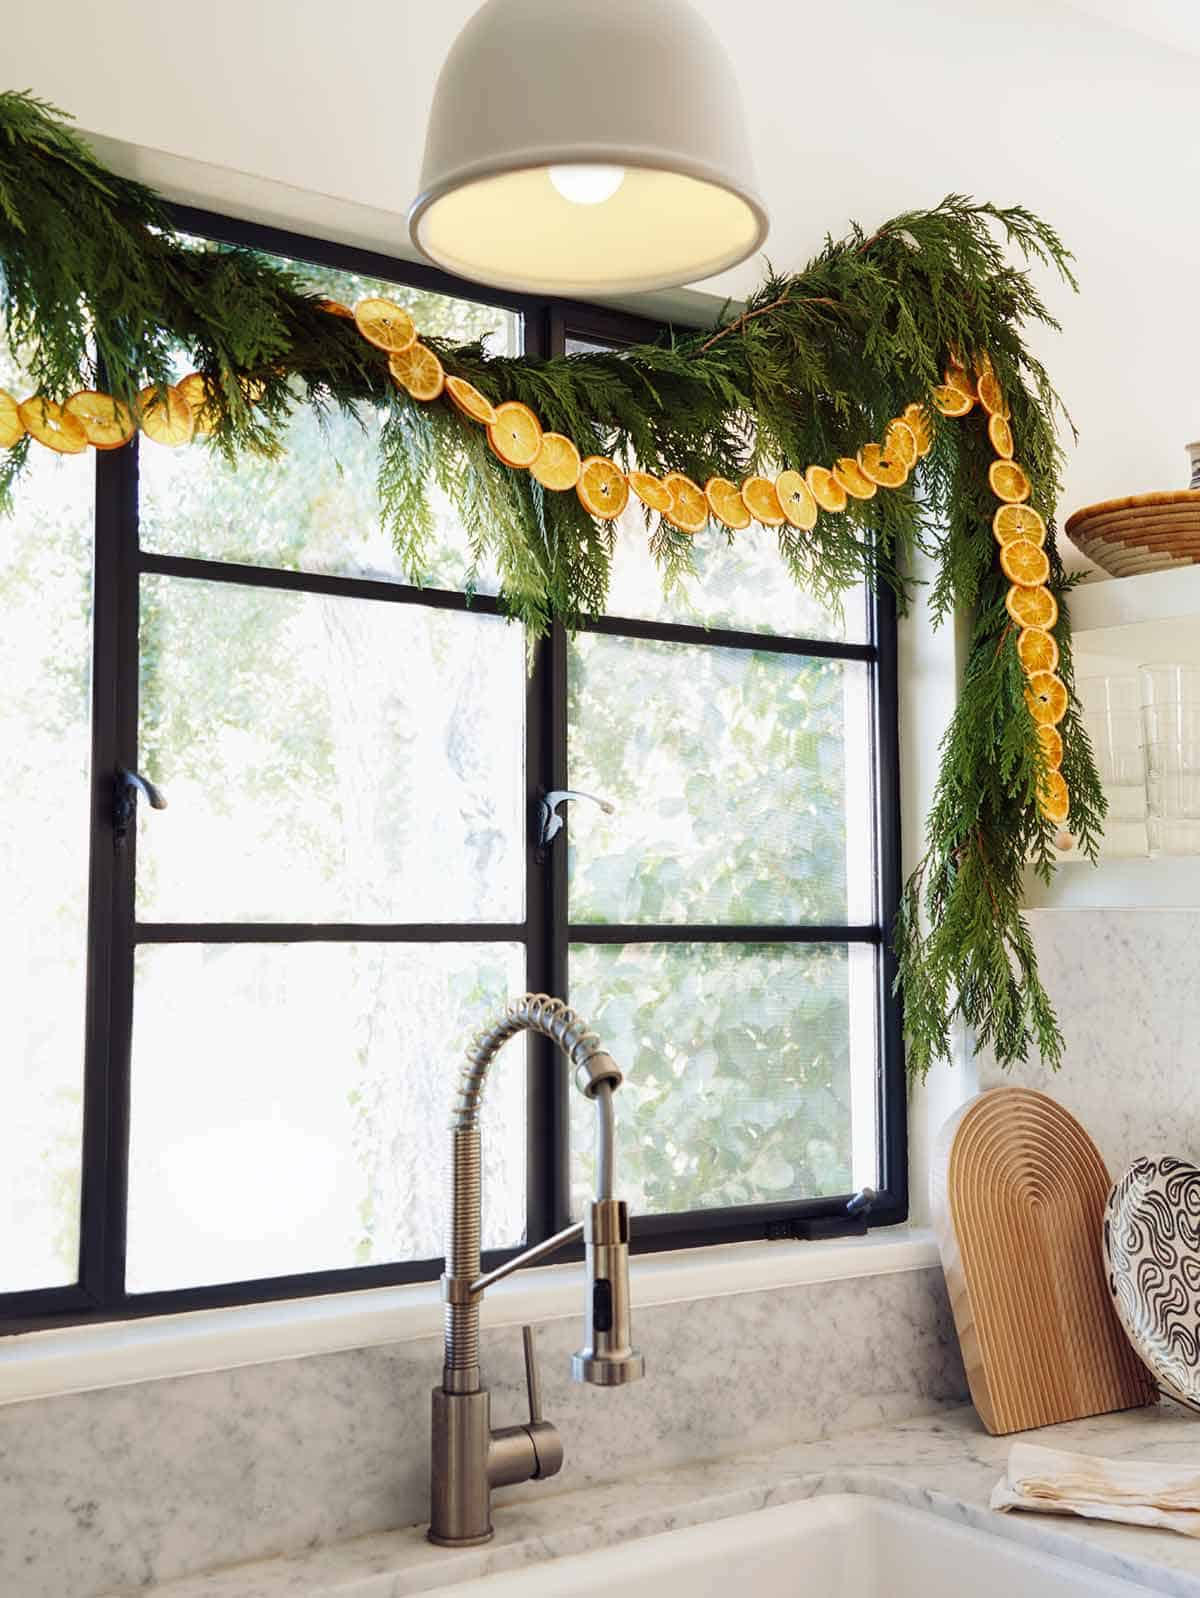 A dehydrated citrus garland strung up above a window in the kitchen.